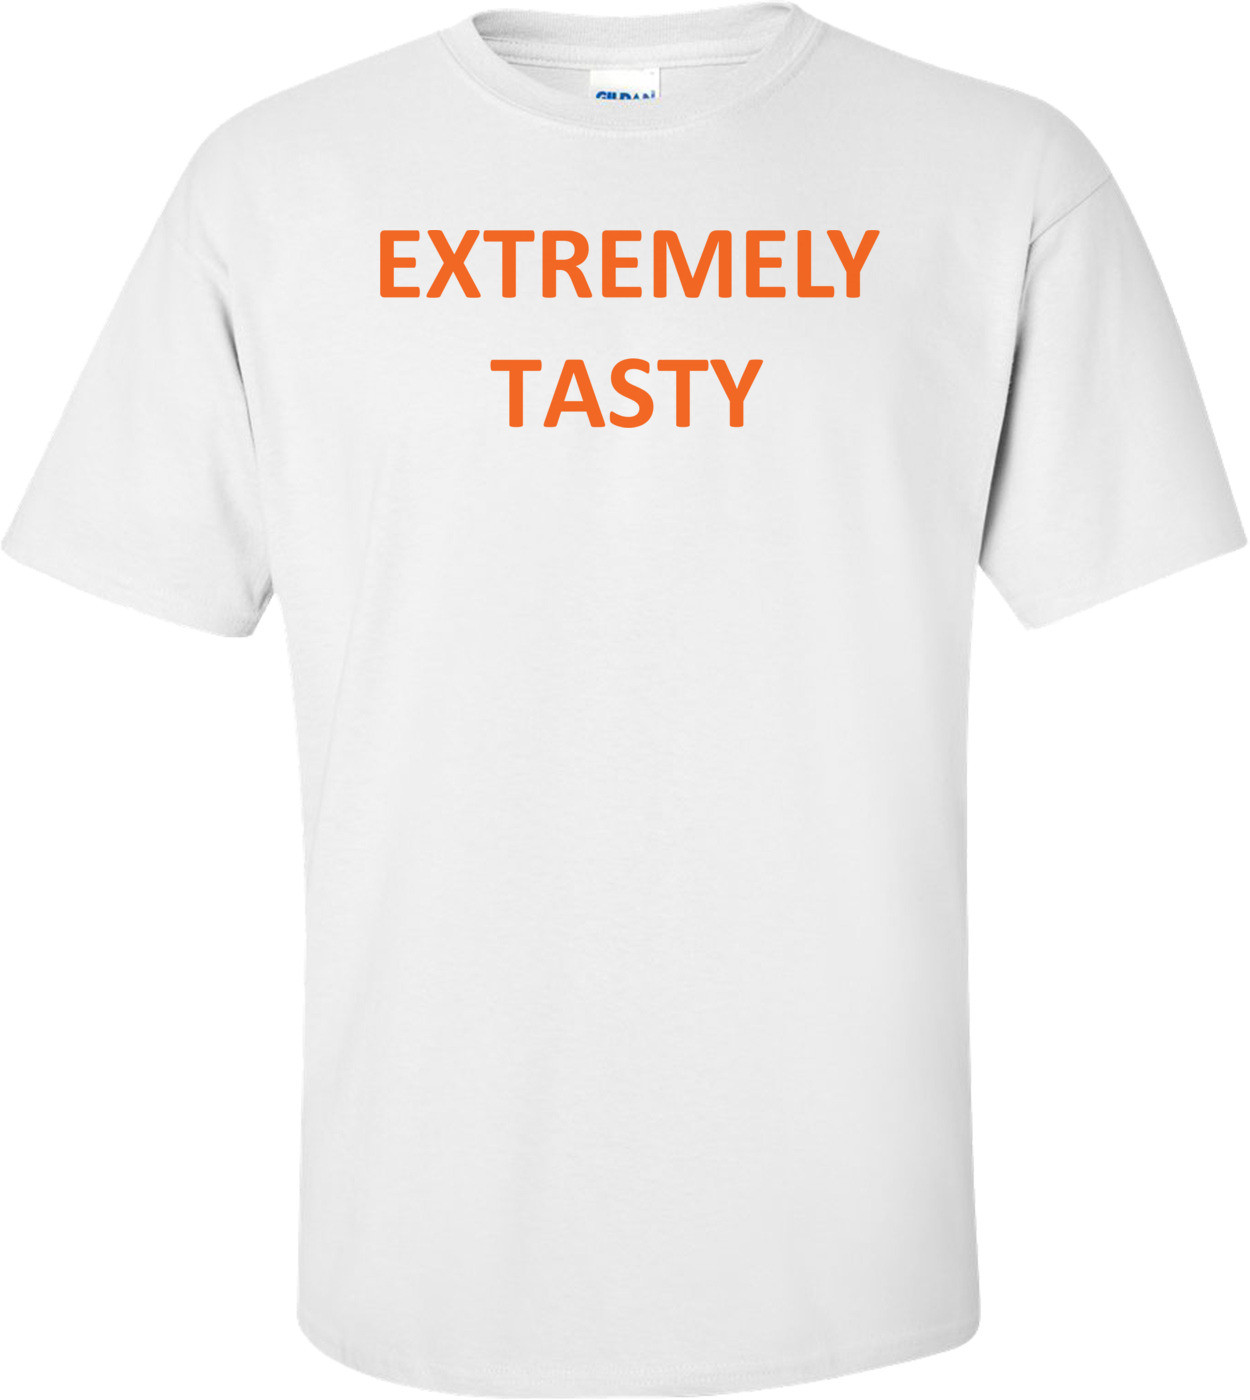 EXTREMELY TASTY Shirt